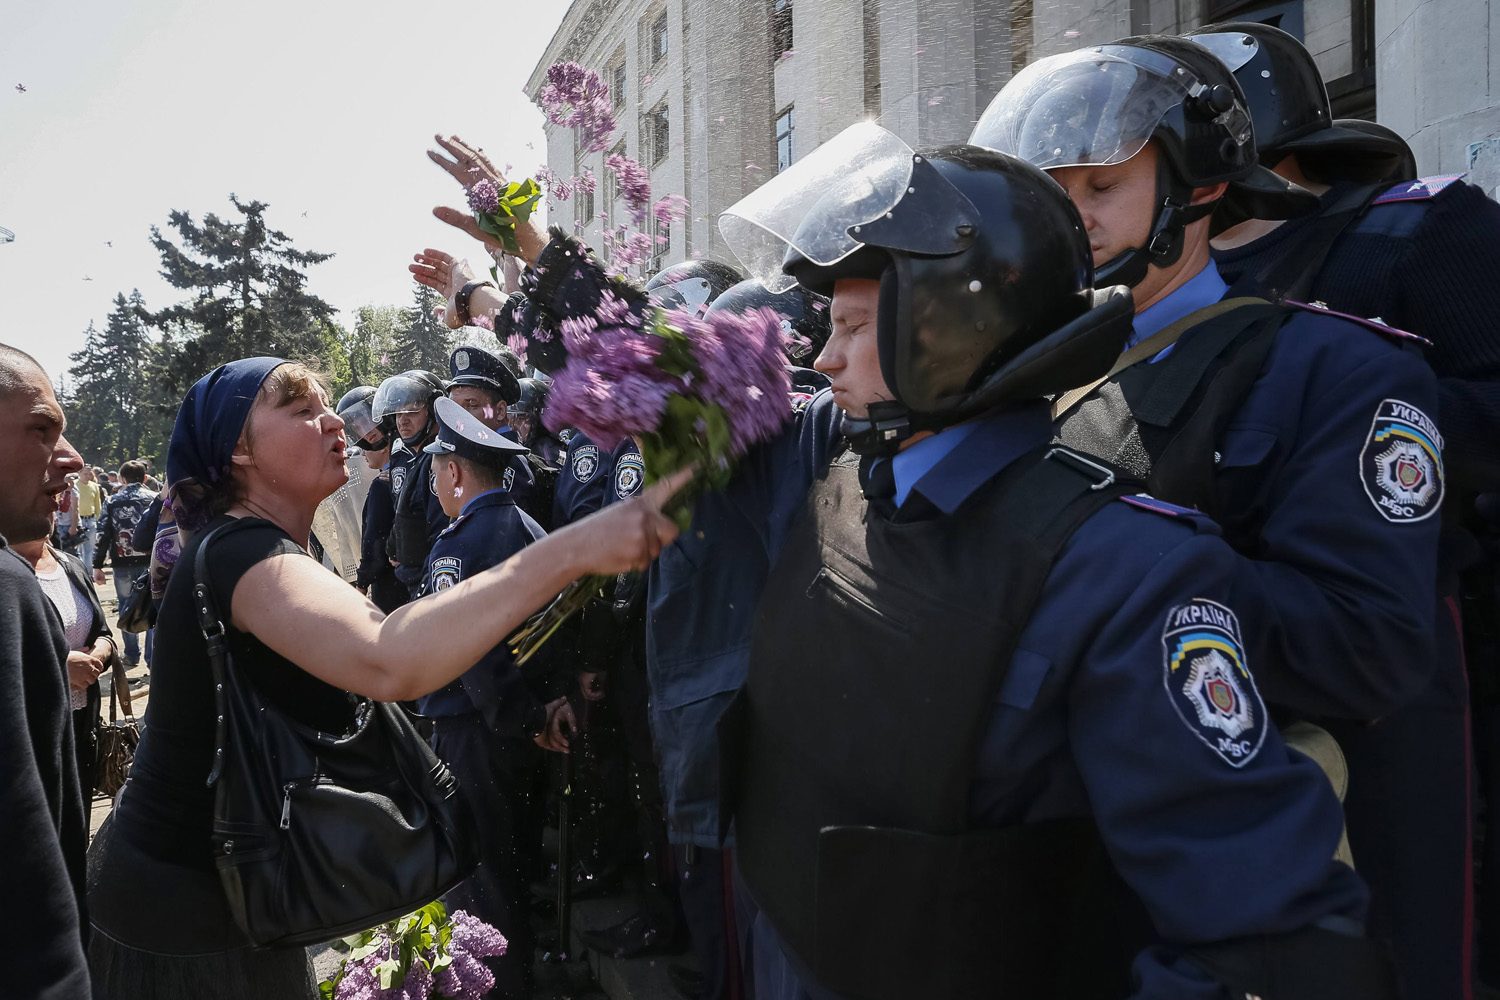 May 3, 2014. A woman argues with members from the Ukrainian Interior Ministry security forces during a rally outside a trade union building in Odessa.